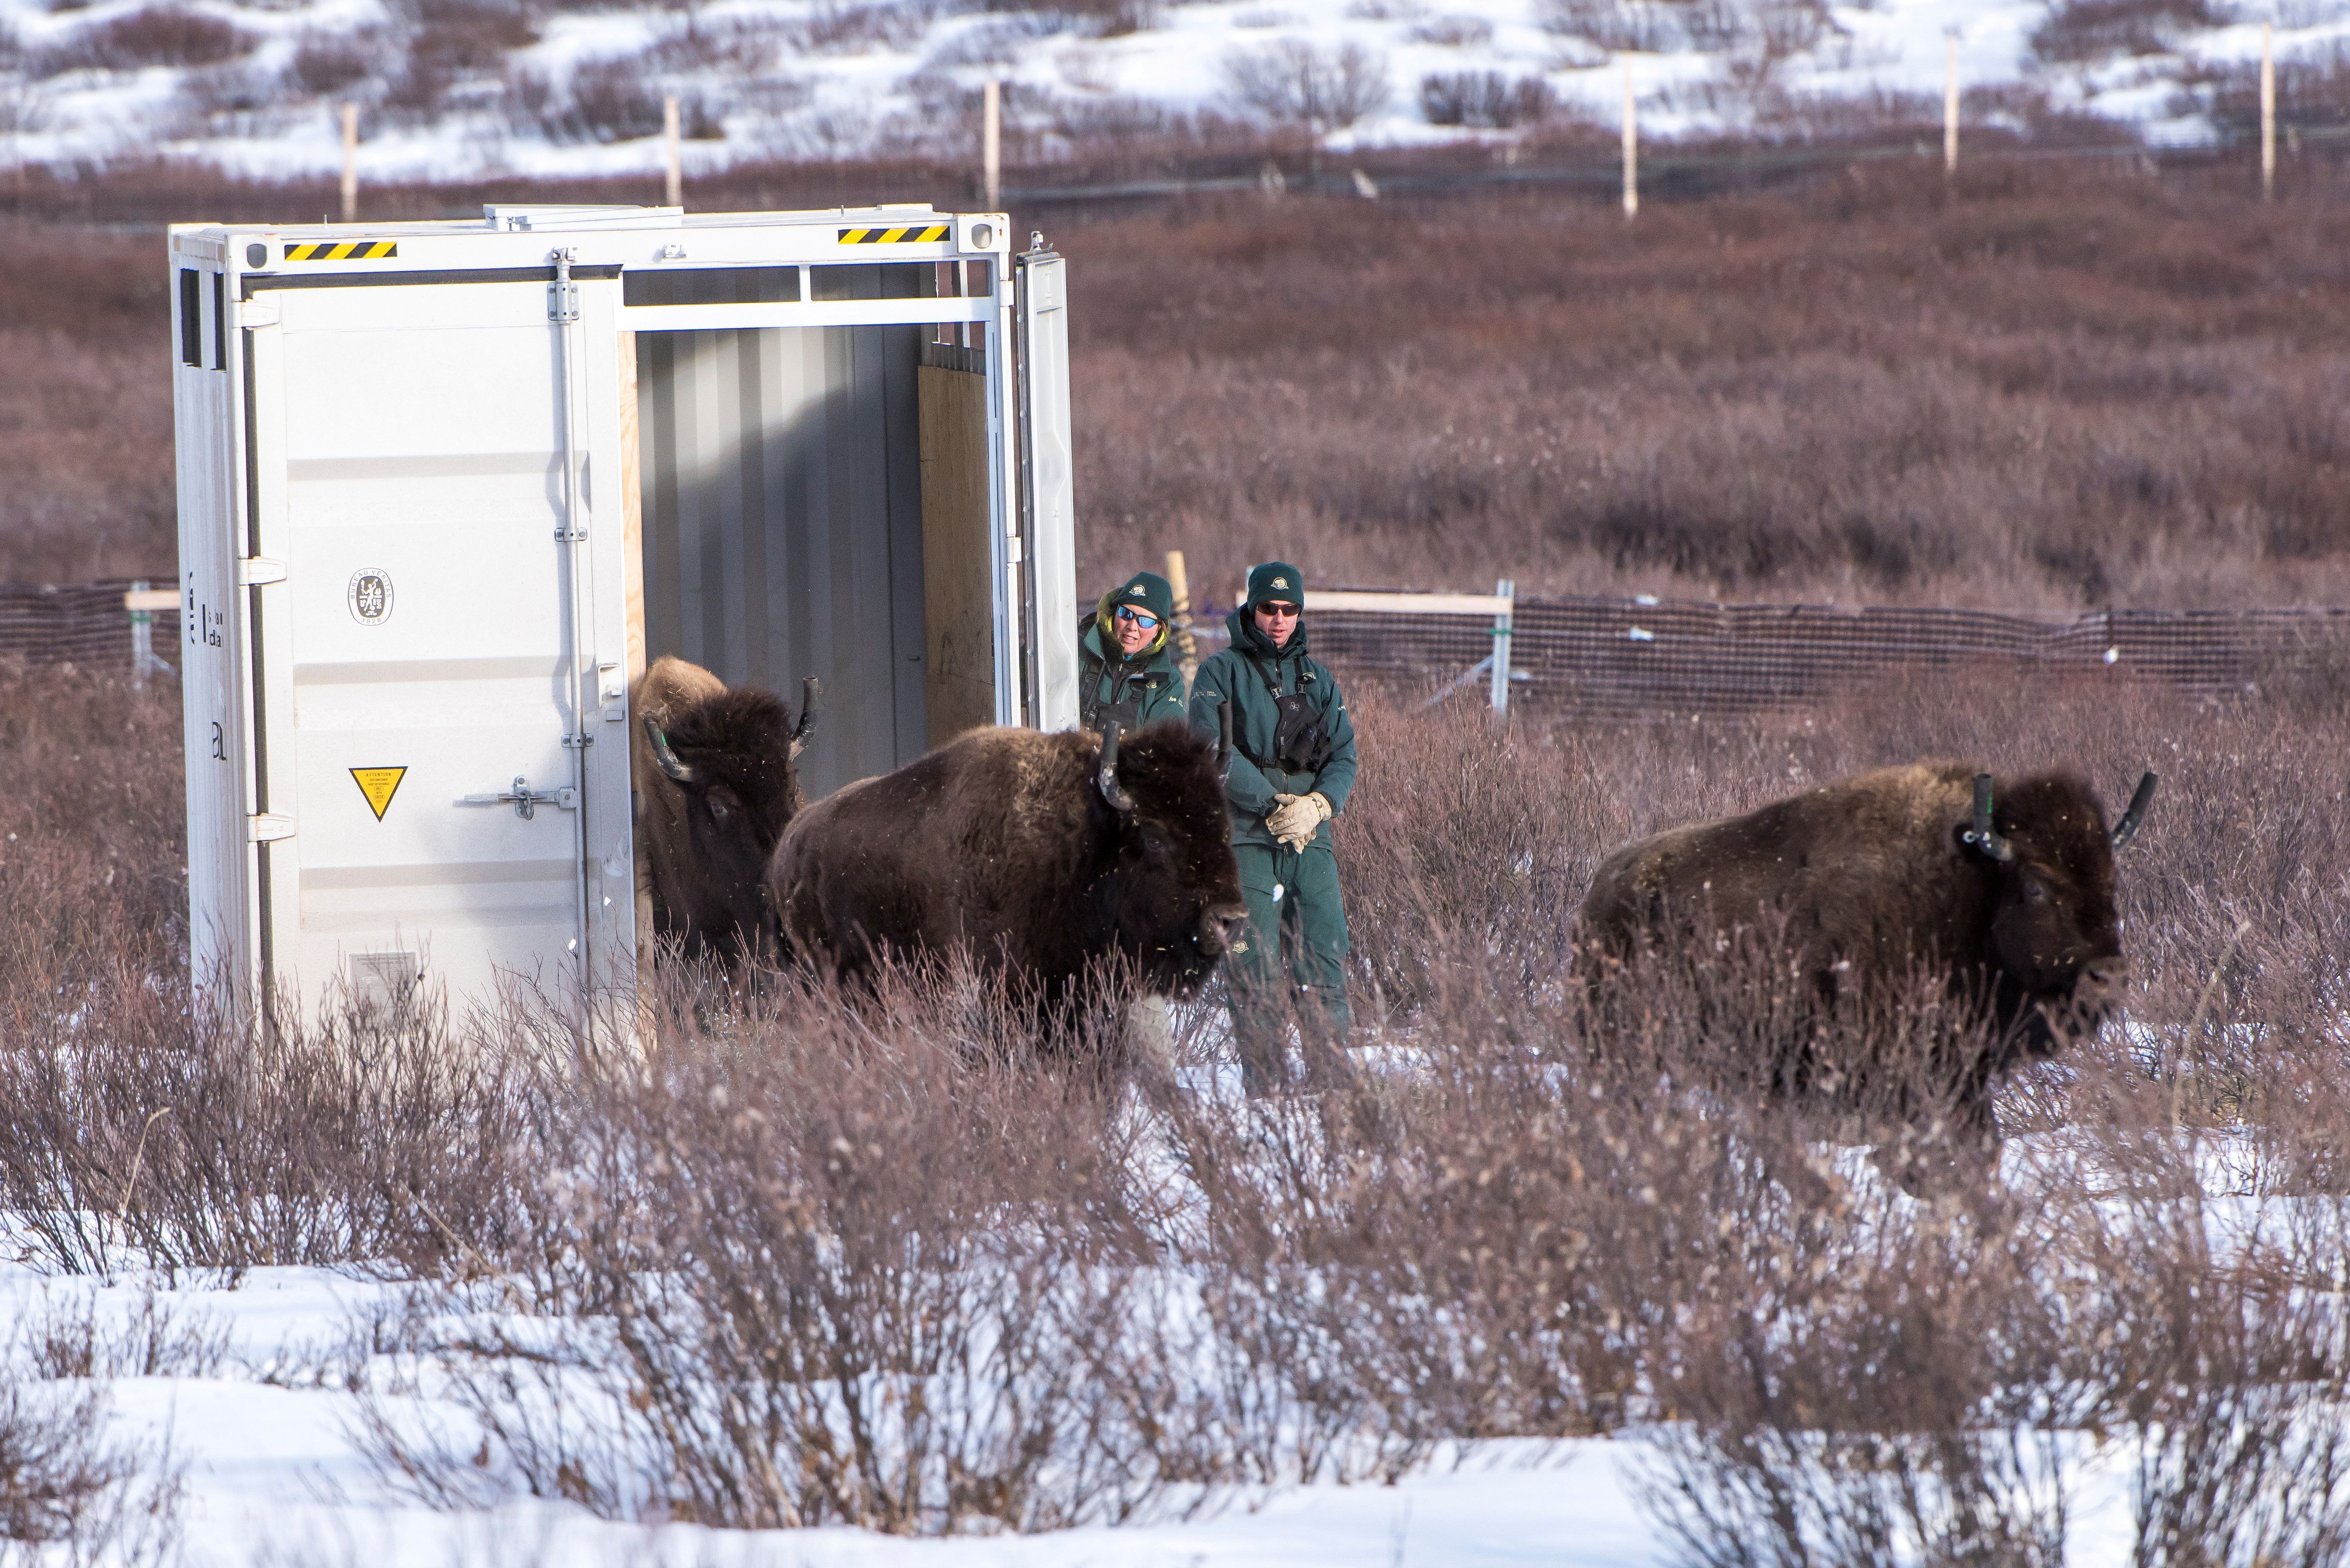 Parks Canada resource conservation staff Saundi Norris and Dillon Watt oversee the bisons' return to Banff National Park in A